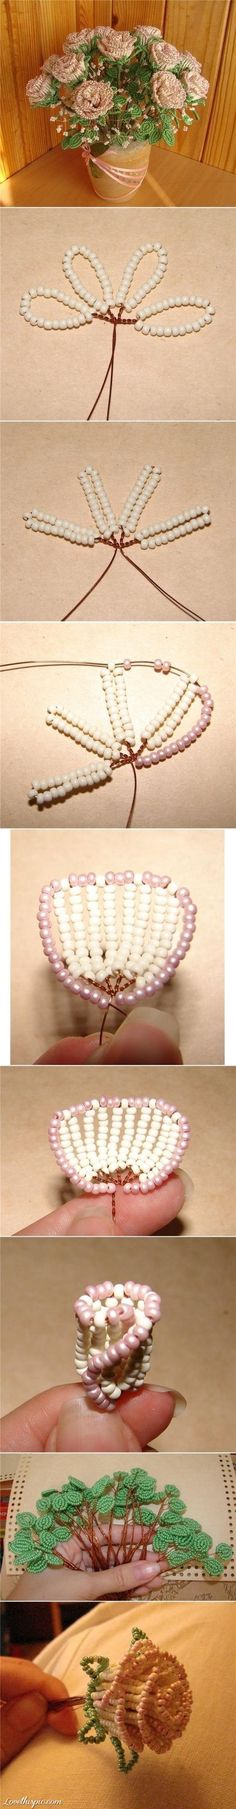 DIY Bead Roses Bouquet Pictures, Photos, and Images for Facebook, Tumblr, Pinterest, and Twitter